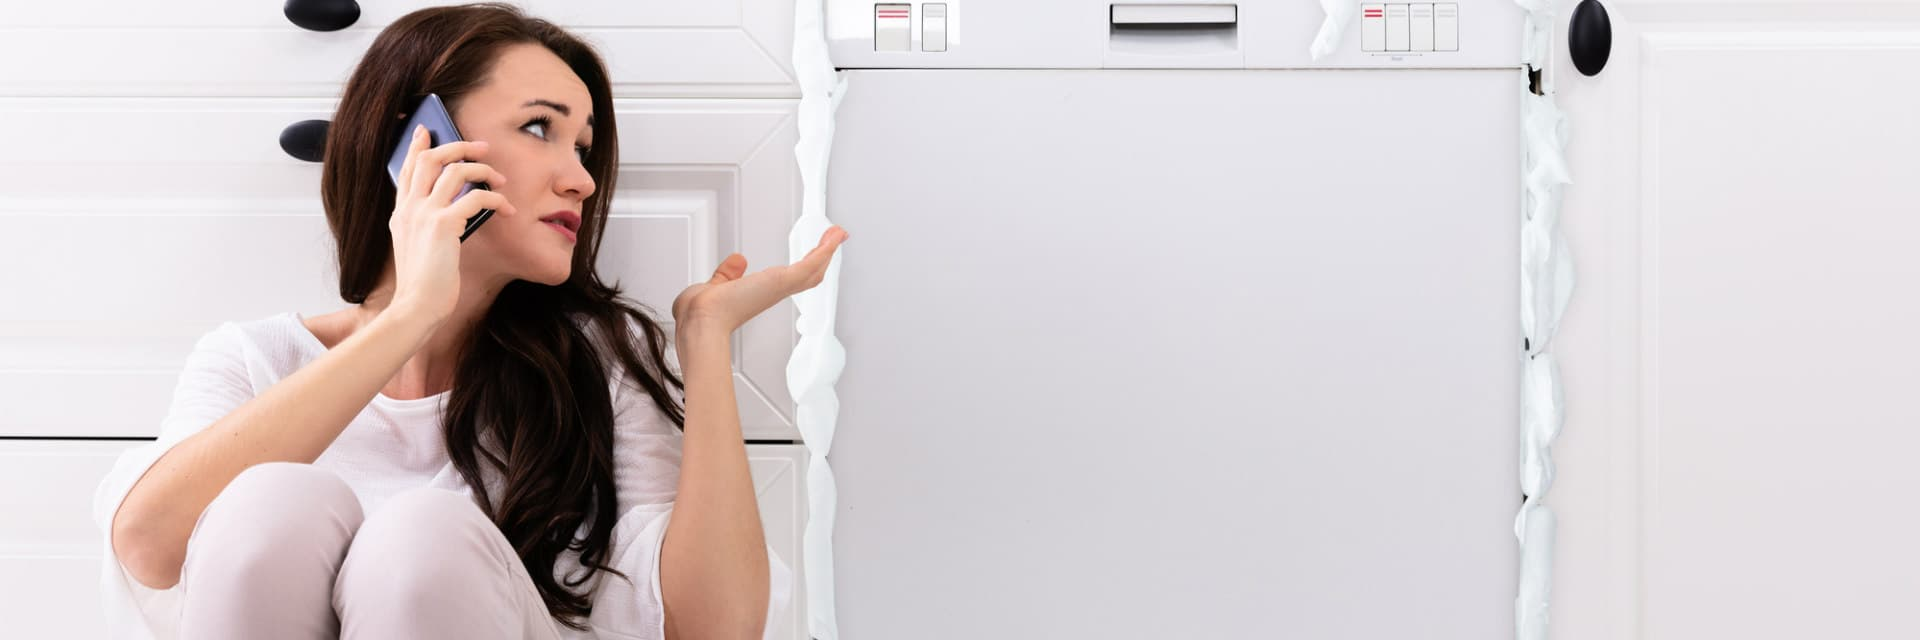 woman on the phone sitting in front of a dishwasher leaking suds